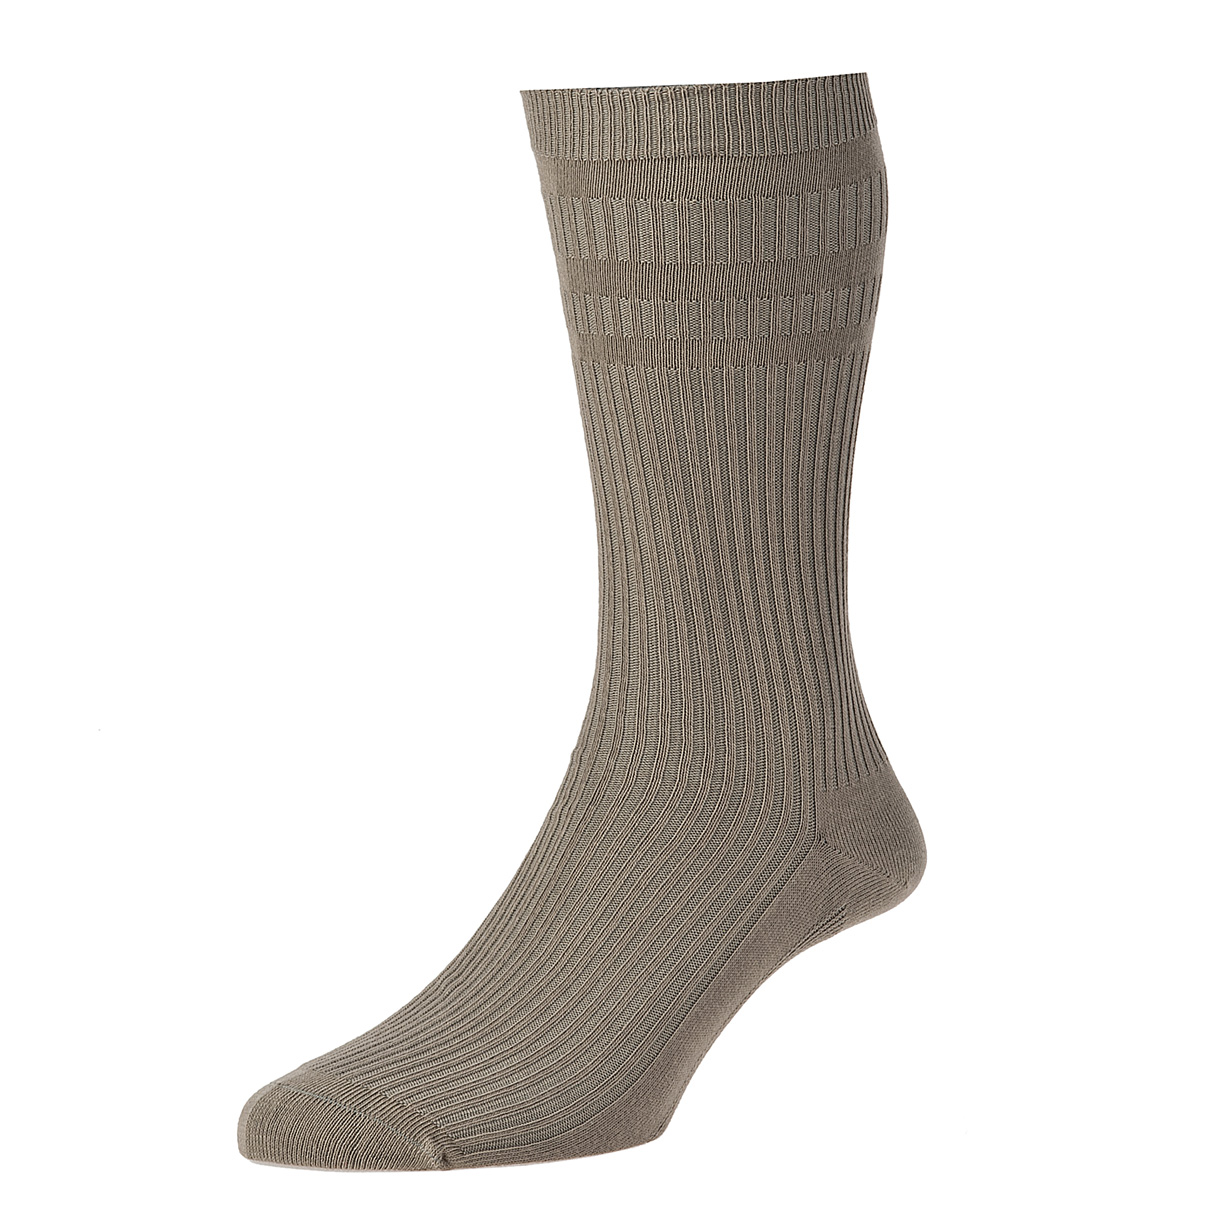 HJ Hall Softop Mens Cotton Socks size 11-13  Taupe HJ91